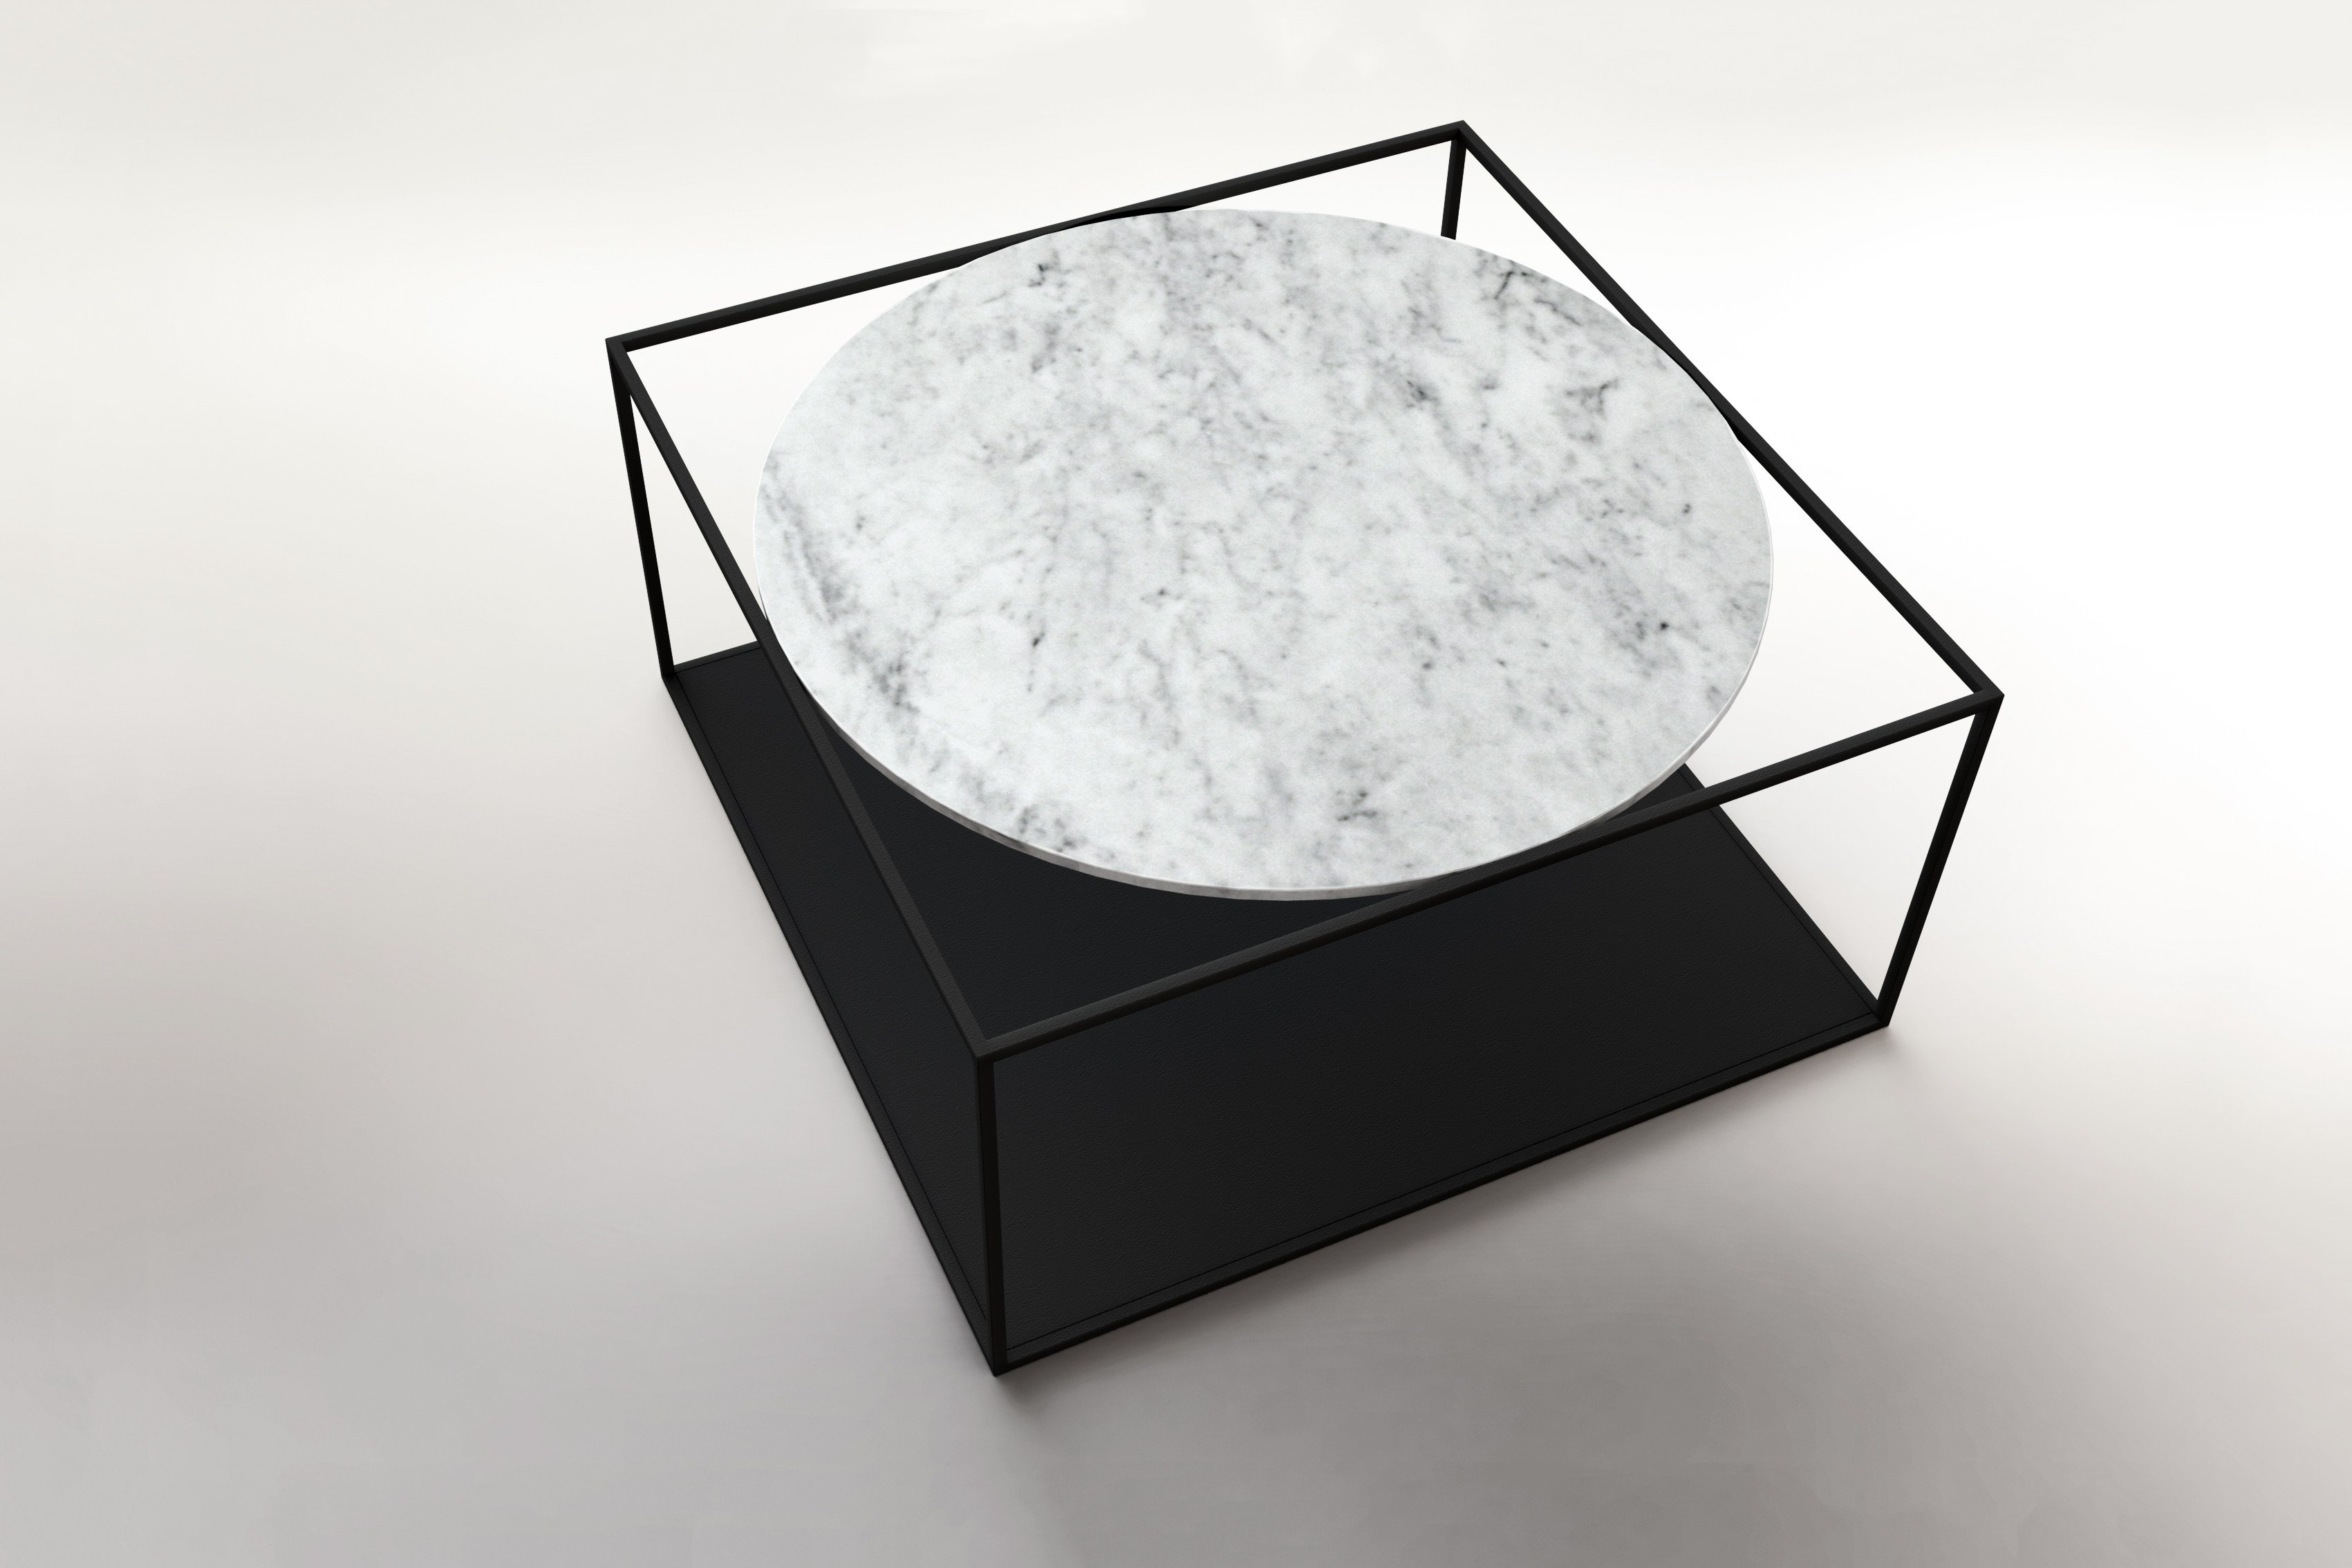 g3 marble coffee table by roche bobois design johan lindst n. Black Bedroom Furniture Sets. Home Design Ideas